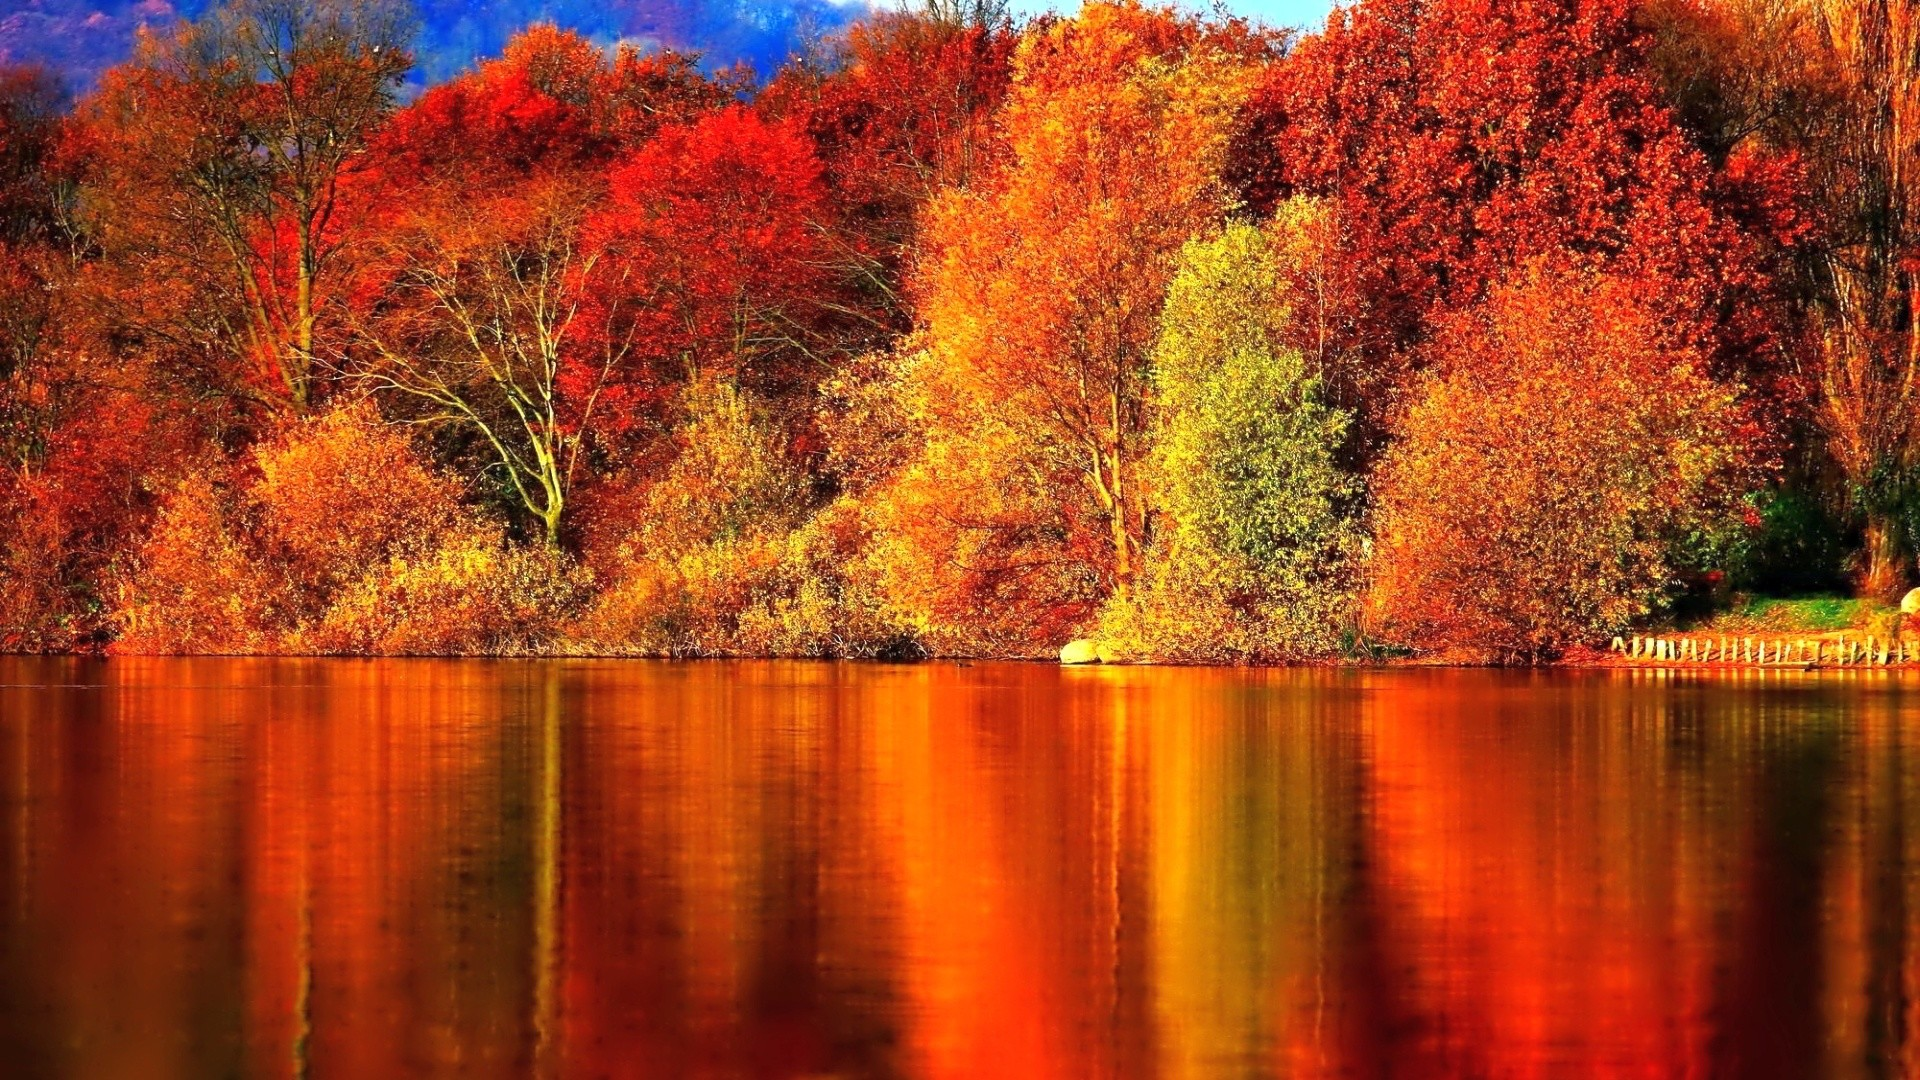 Desktop Wallpaper Autumn Scenes 41 Images